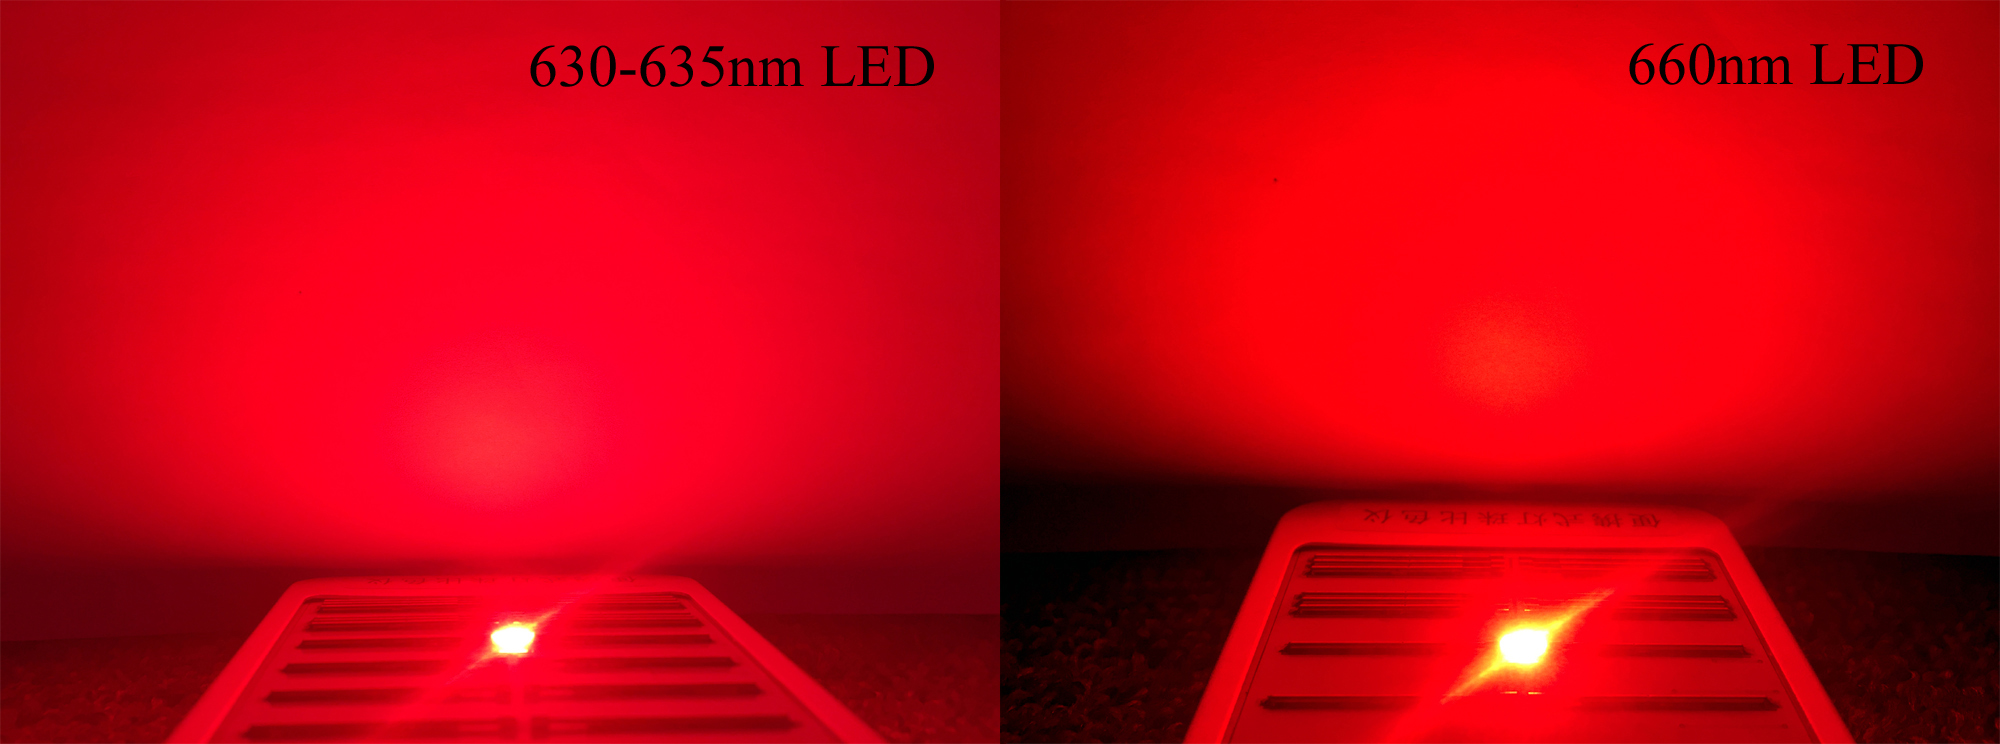 Red LED 635nm VS 660nm